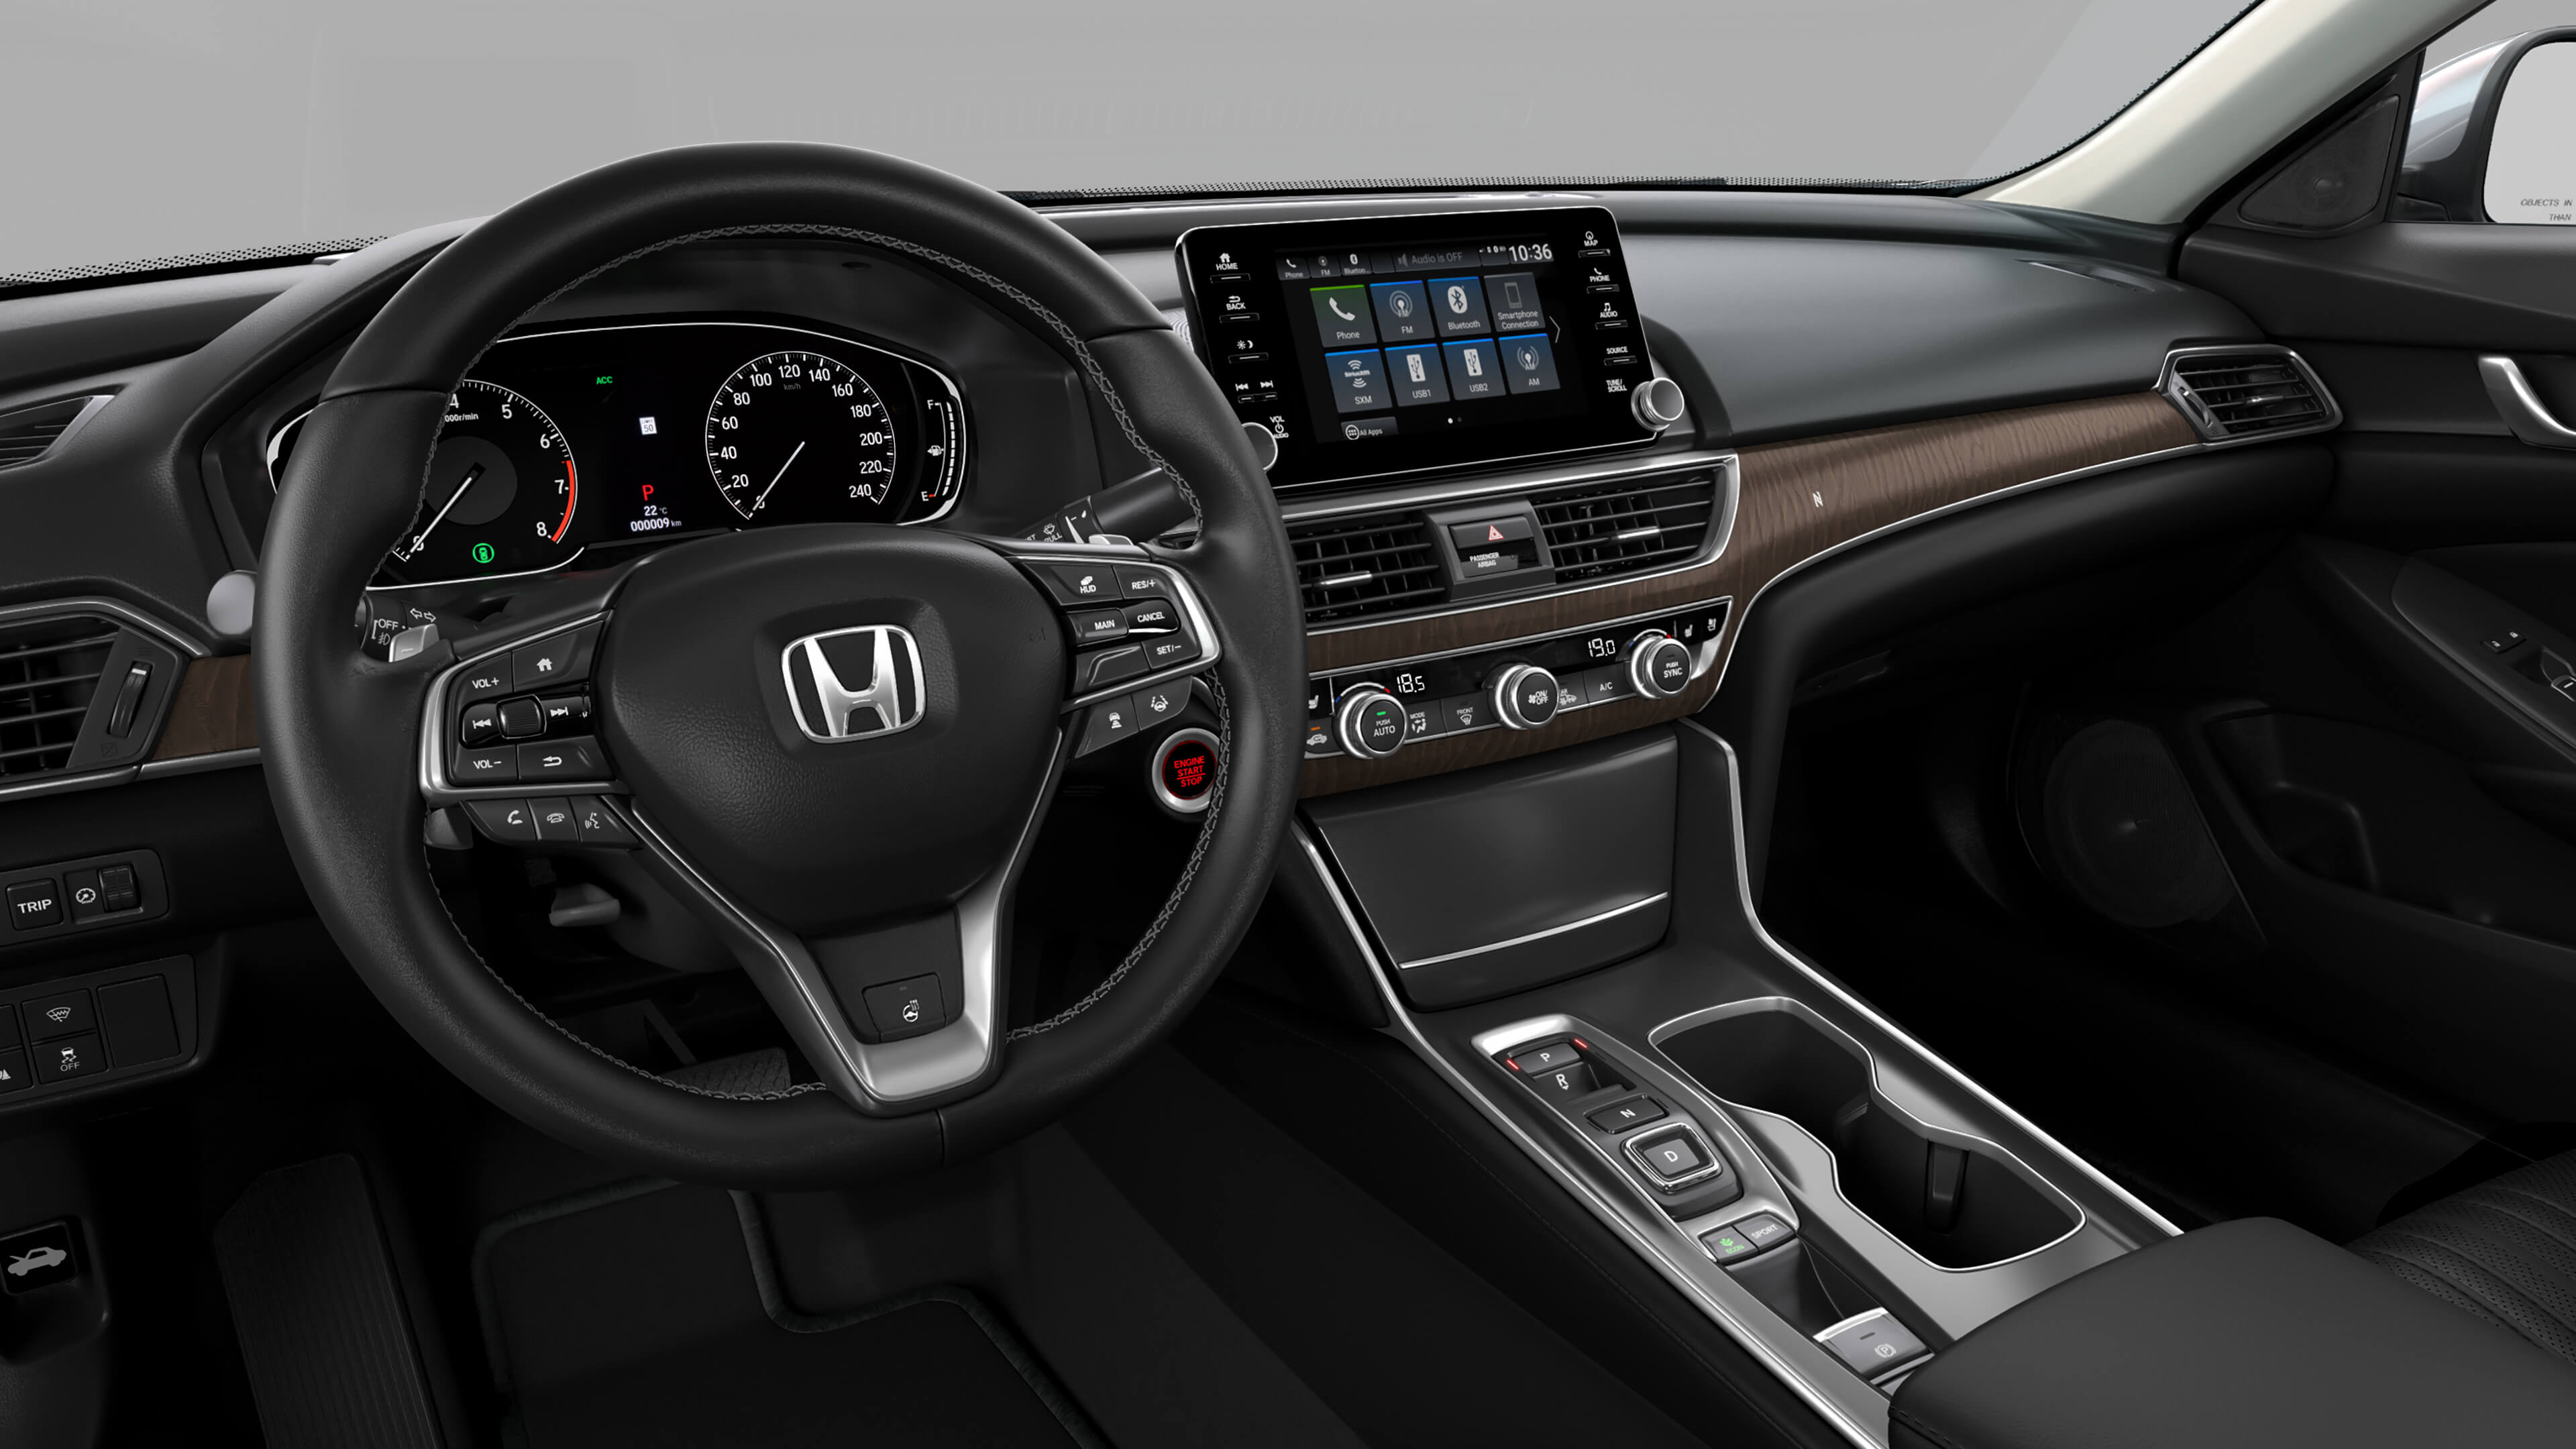 2018 Honda  Accord Features at Richmond Hill Honda in Toronto and the GTA